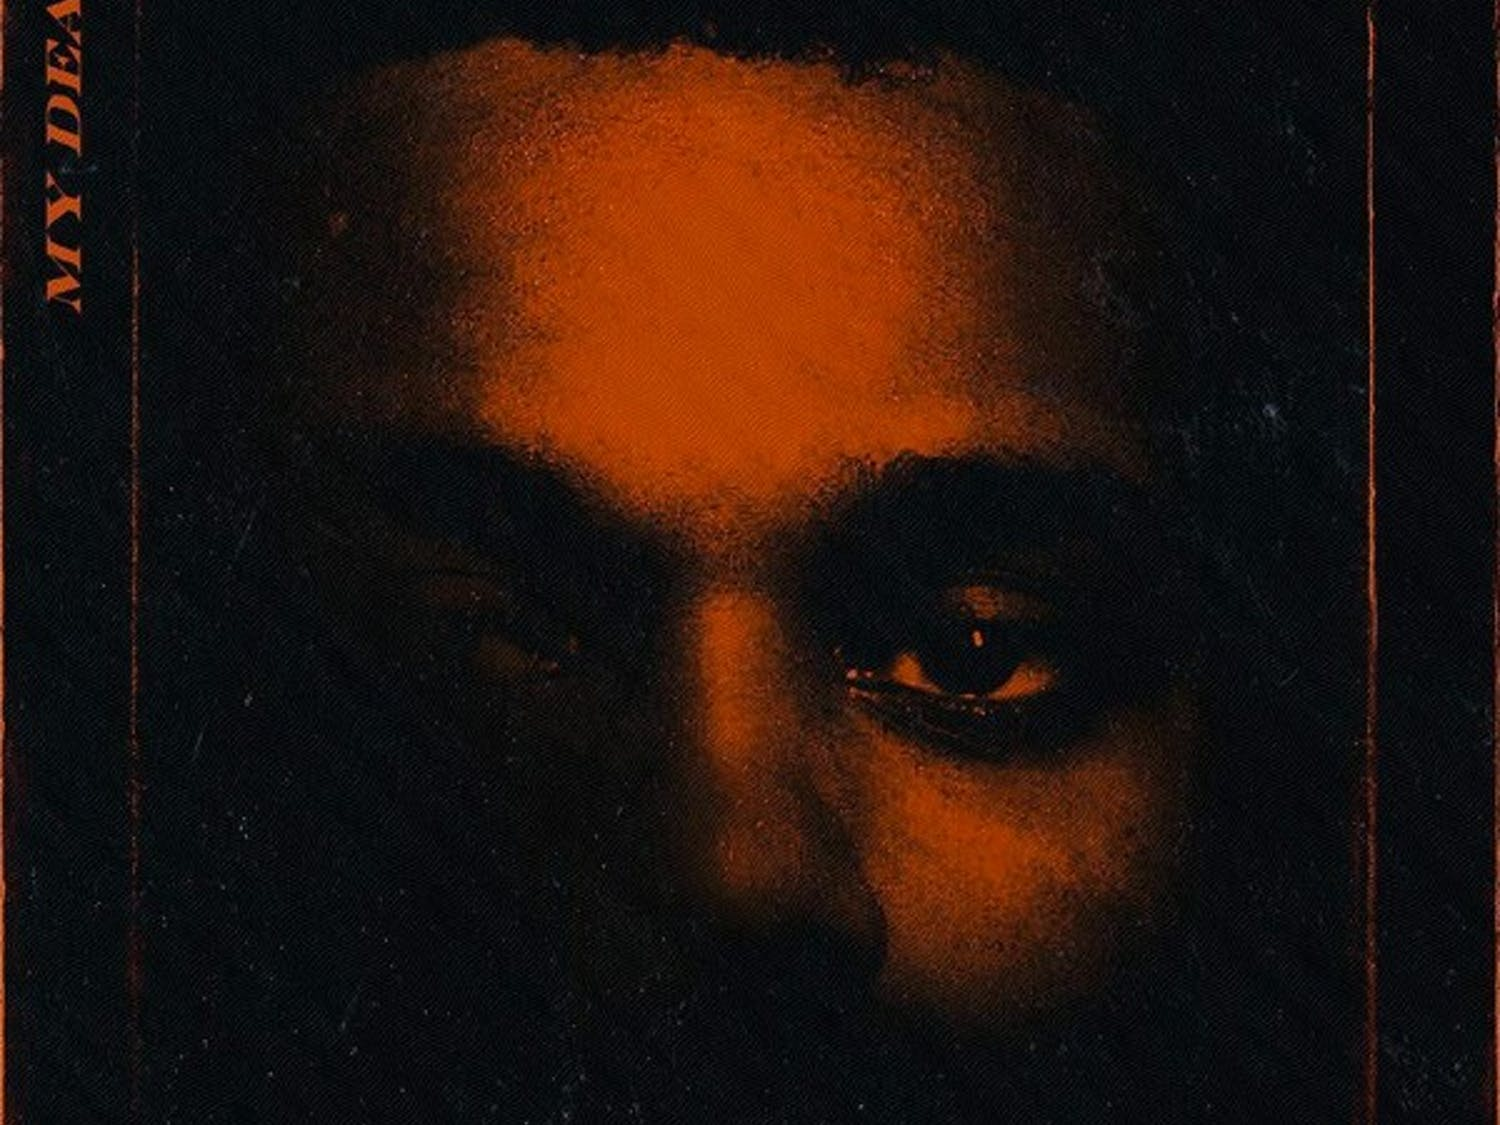 """The Weeknd's latest release """"My Dear Melancholy,"""" is a return to his roots and exploitation of his emotions."""